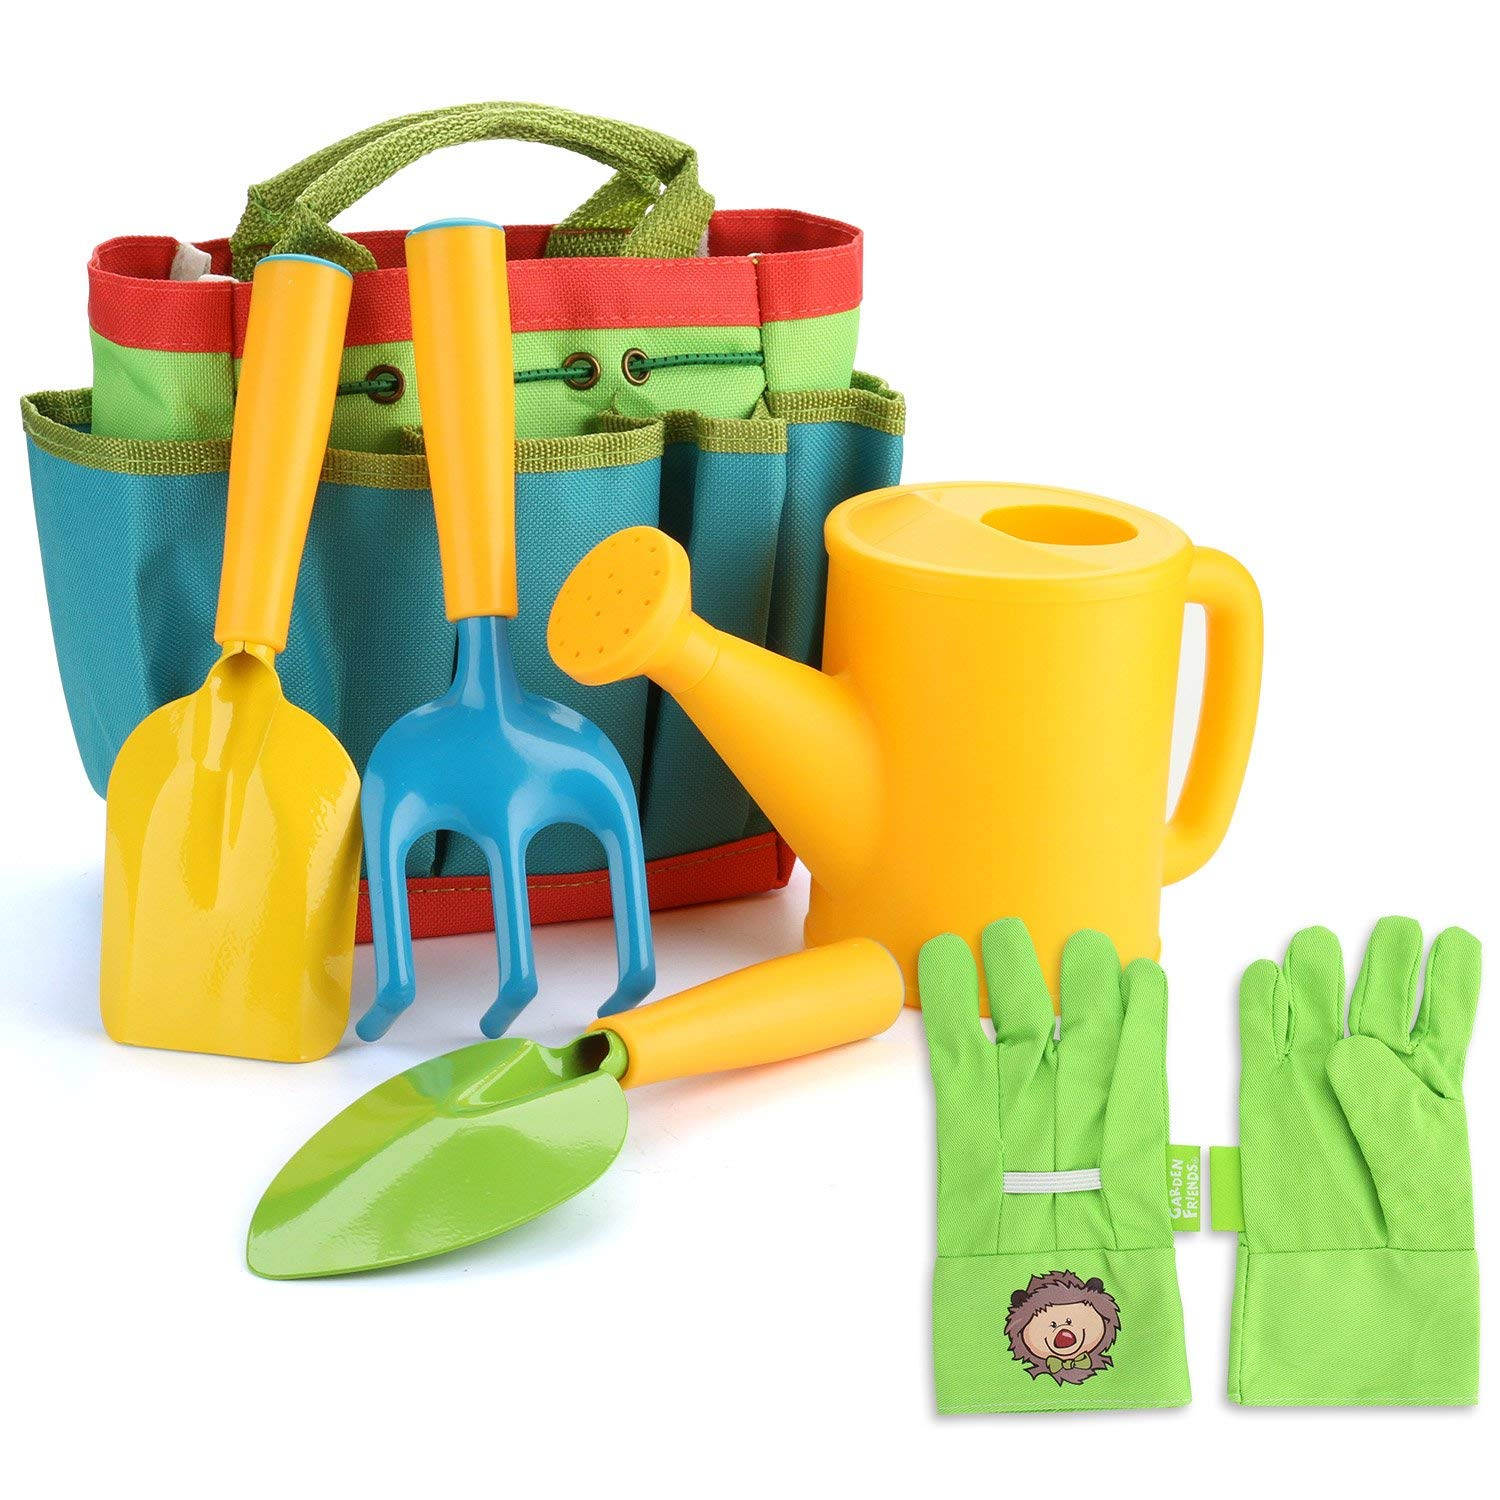 FITNATE Green Kids Garden Tools Set,6 PCS Garden Tools Including Watering Can, Shovel, Rake, Fork, Children Gardening Gloves and Garden Tote Bag, All in One Set